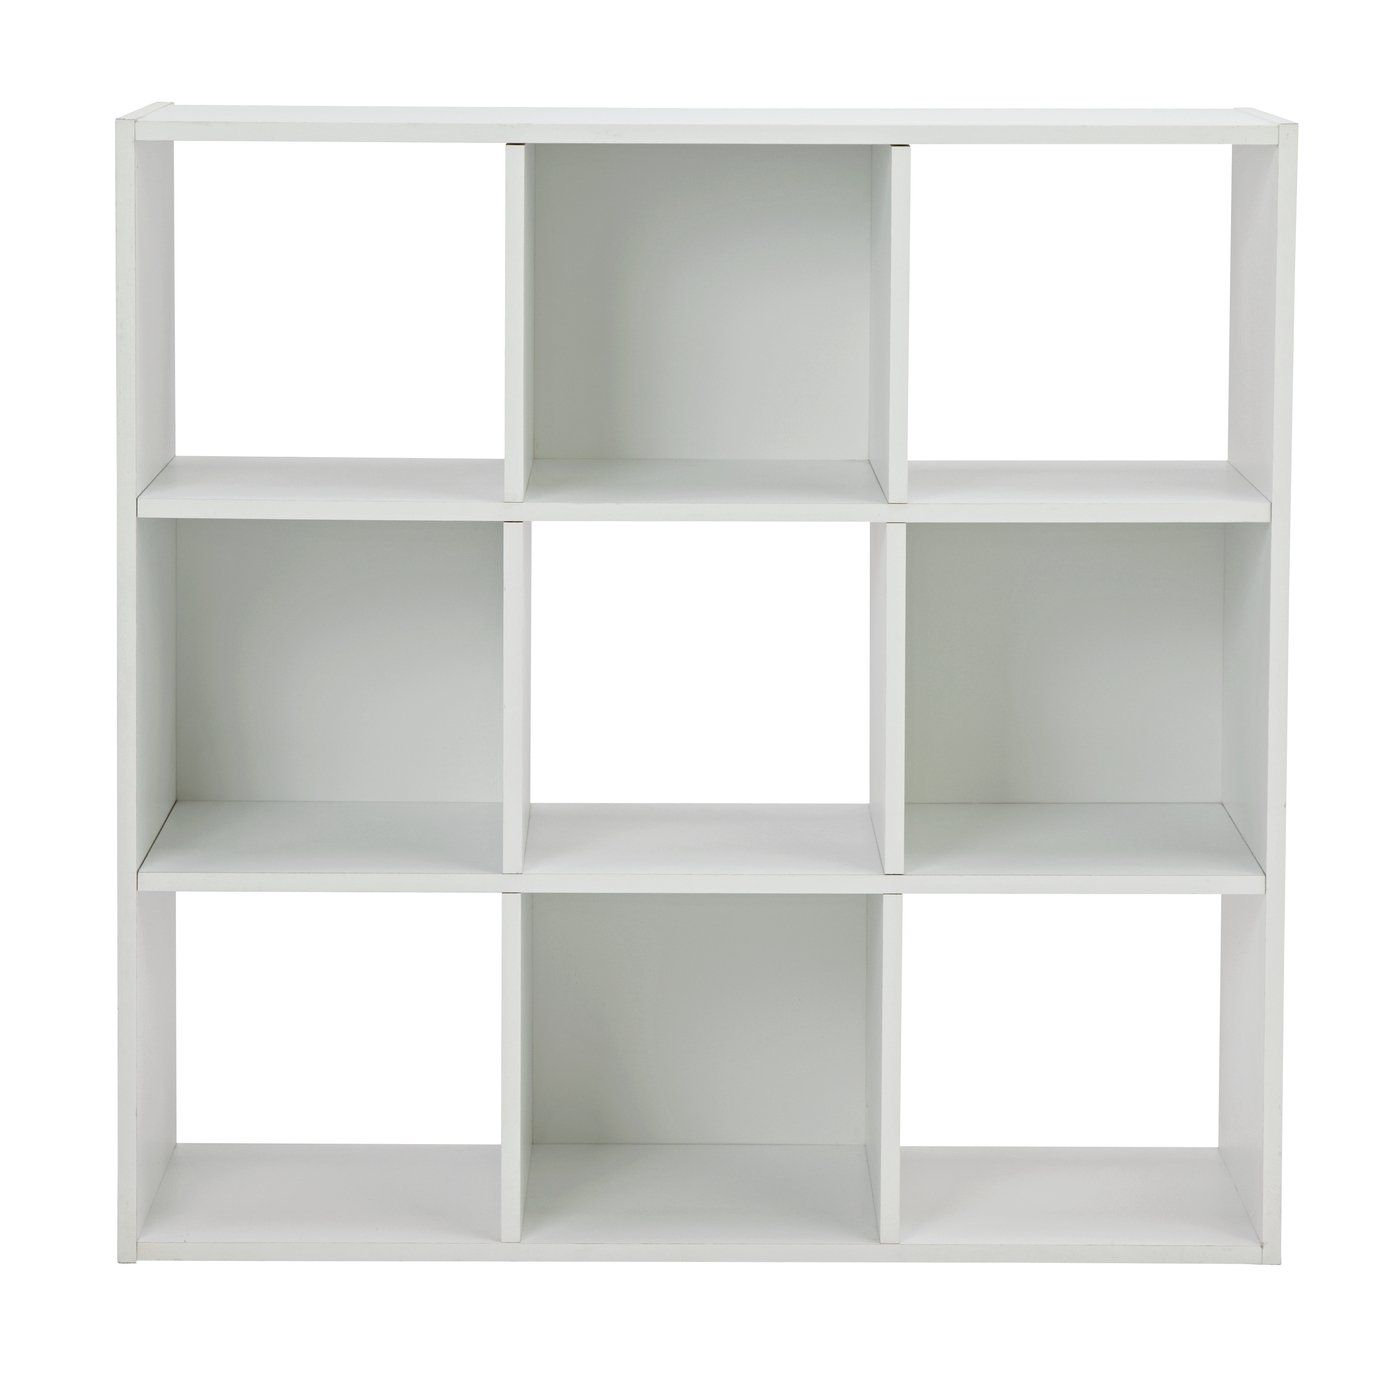 Buy Argos Home Squares 9 Cube Storage Unit White Bookcases And Shelving Units In 2020 Cube Storage Unit Cube Storage White Storage